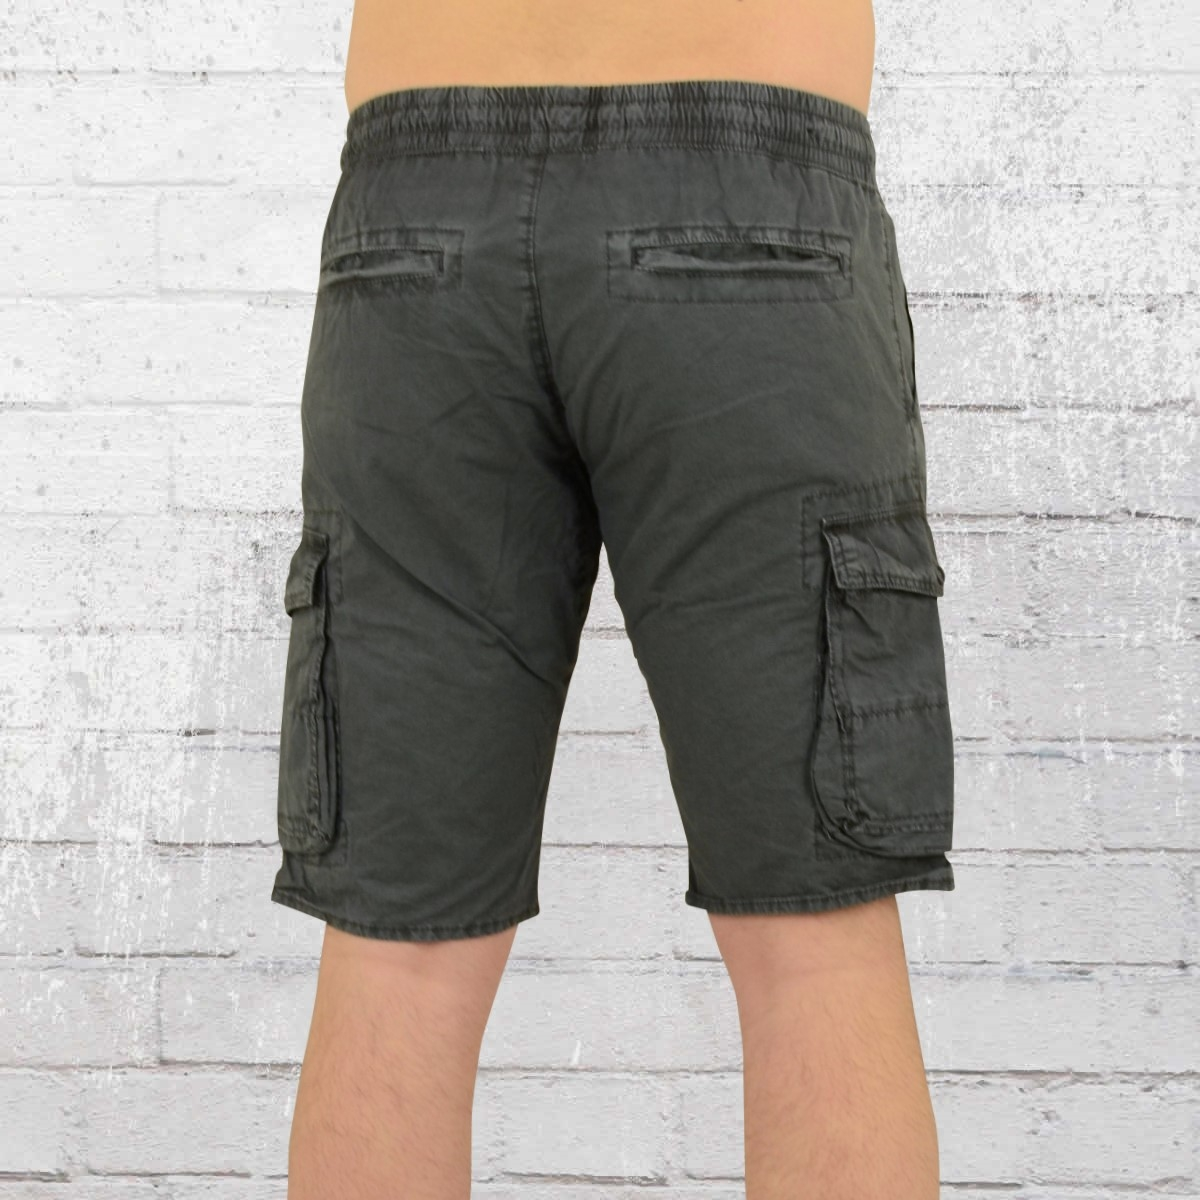 28525a84b901f8 Order now | Jet Lag Mens Cargo Short With Stretchy Waistband 17-129 grey